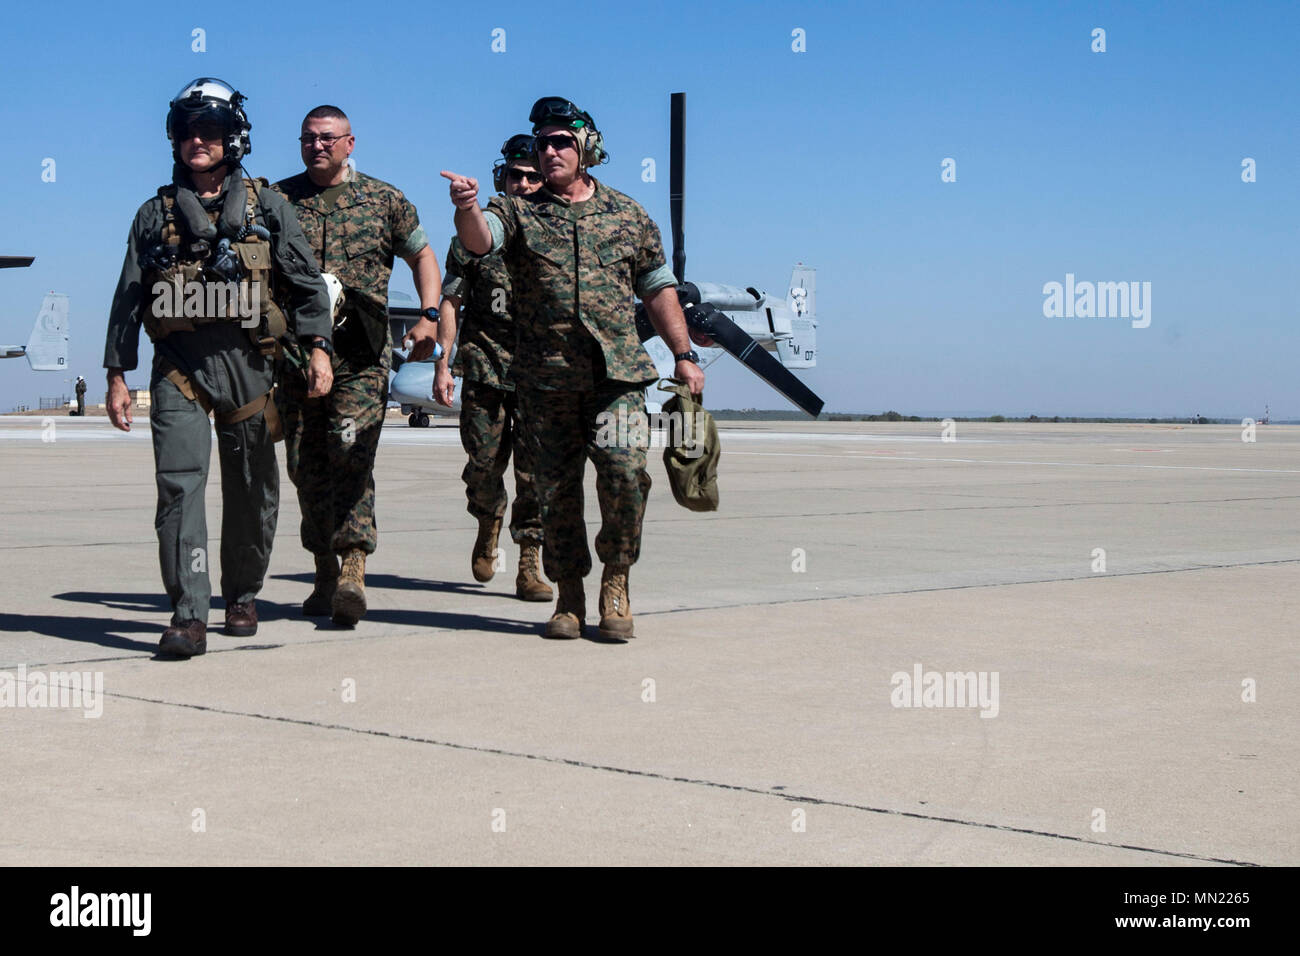 Sergeant Maj. John Elliot, right, the sergeant major of Special Purpose Marine Air-Ground Task Force-Crisis Response-Africa, leads Maj. Gen. Russell A. Sanborn, the commander of Marine Forces Europe and Africa, and his staff off the flight line at Morón Air Base, Spain, Aug. 9 2017. SPMAGTF-CR-AF deployed to conduct limited crisis-response and theater-security operations in Europe and North Africa. (U.S. Marine Corps Photo by 1st Lt. Alexandra Bello) Stock Photo